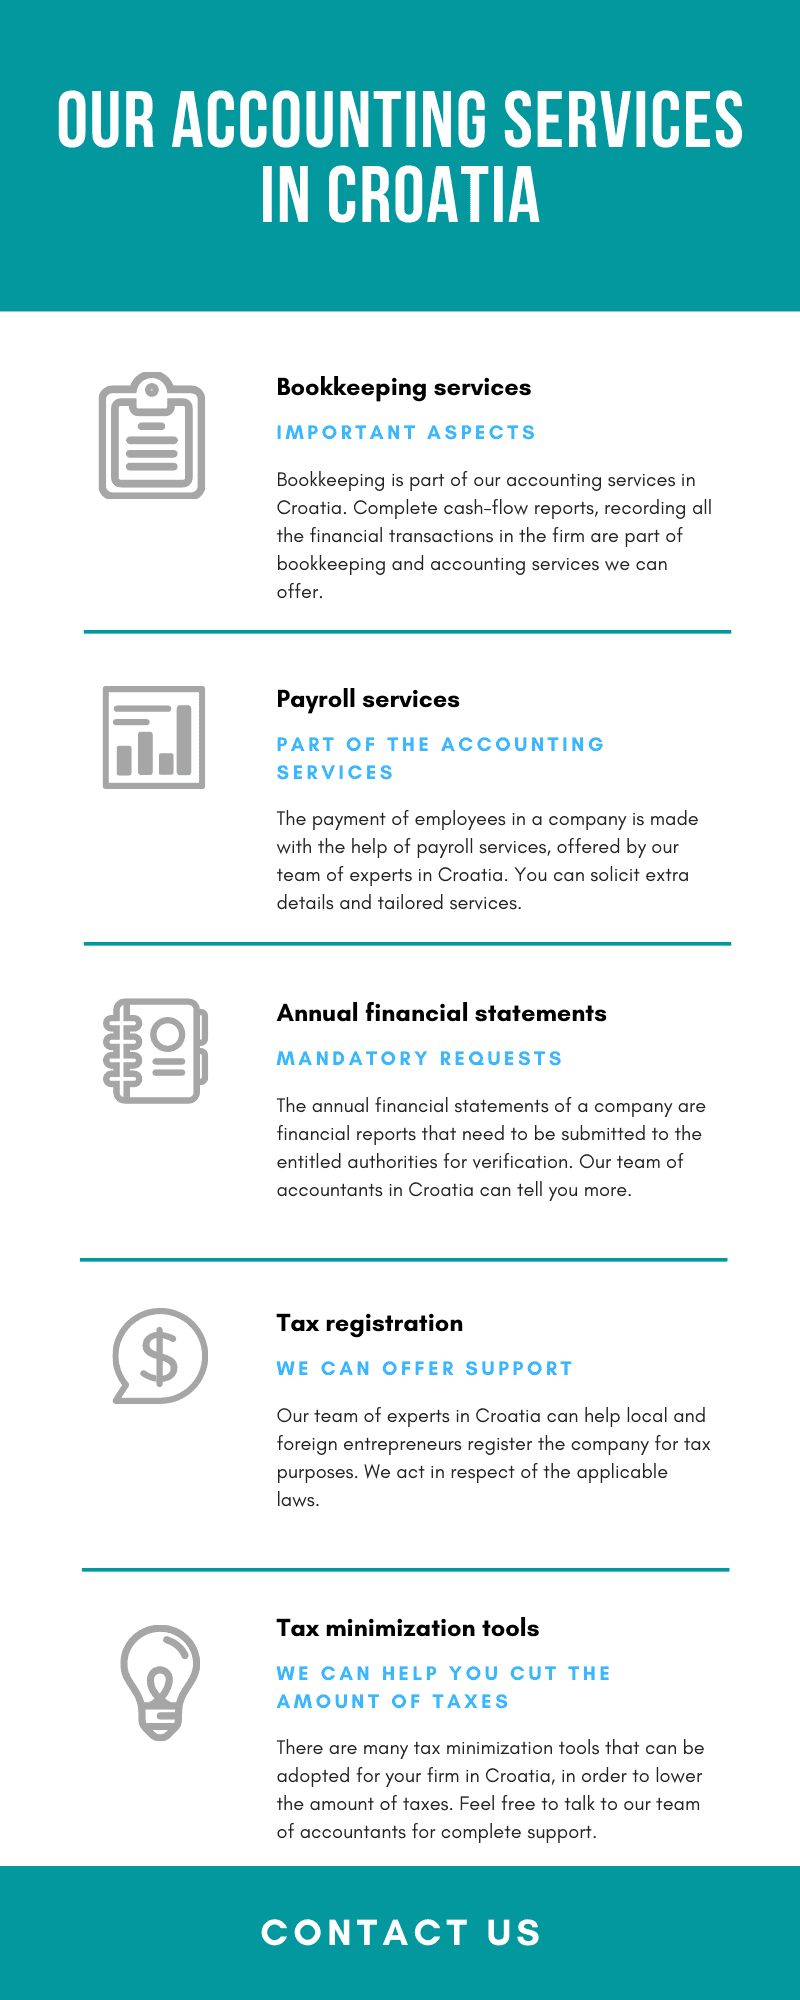 Our accounting services in Croatia1.png